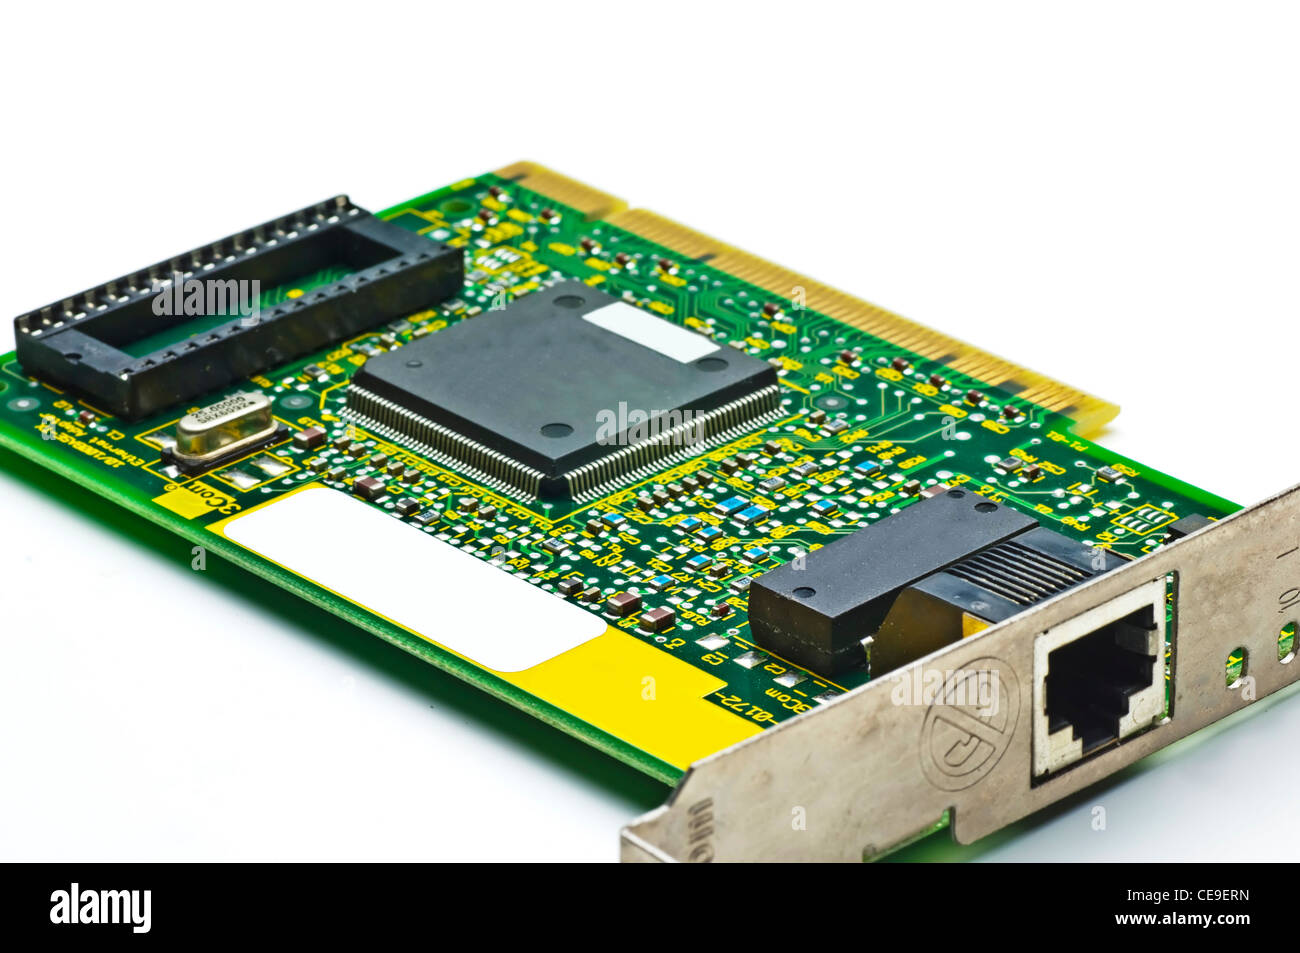 circuit board of an isdn internet card - Stock Image